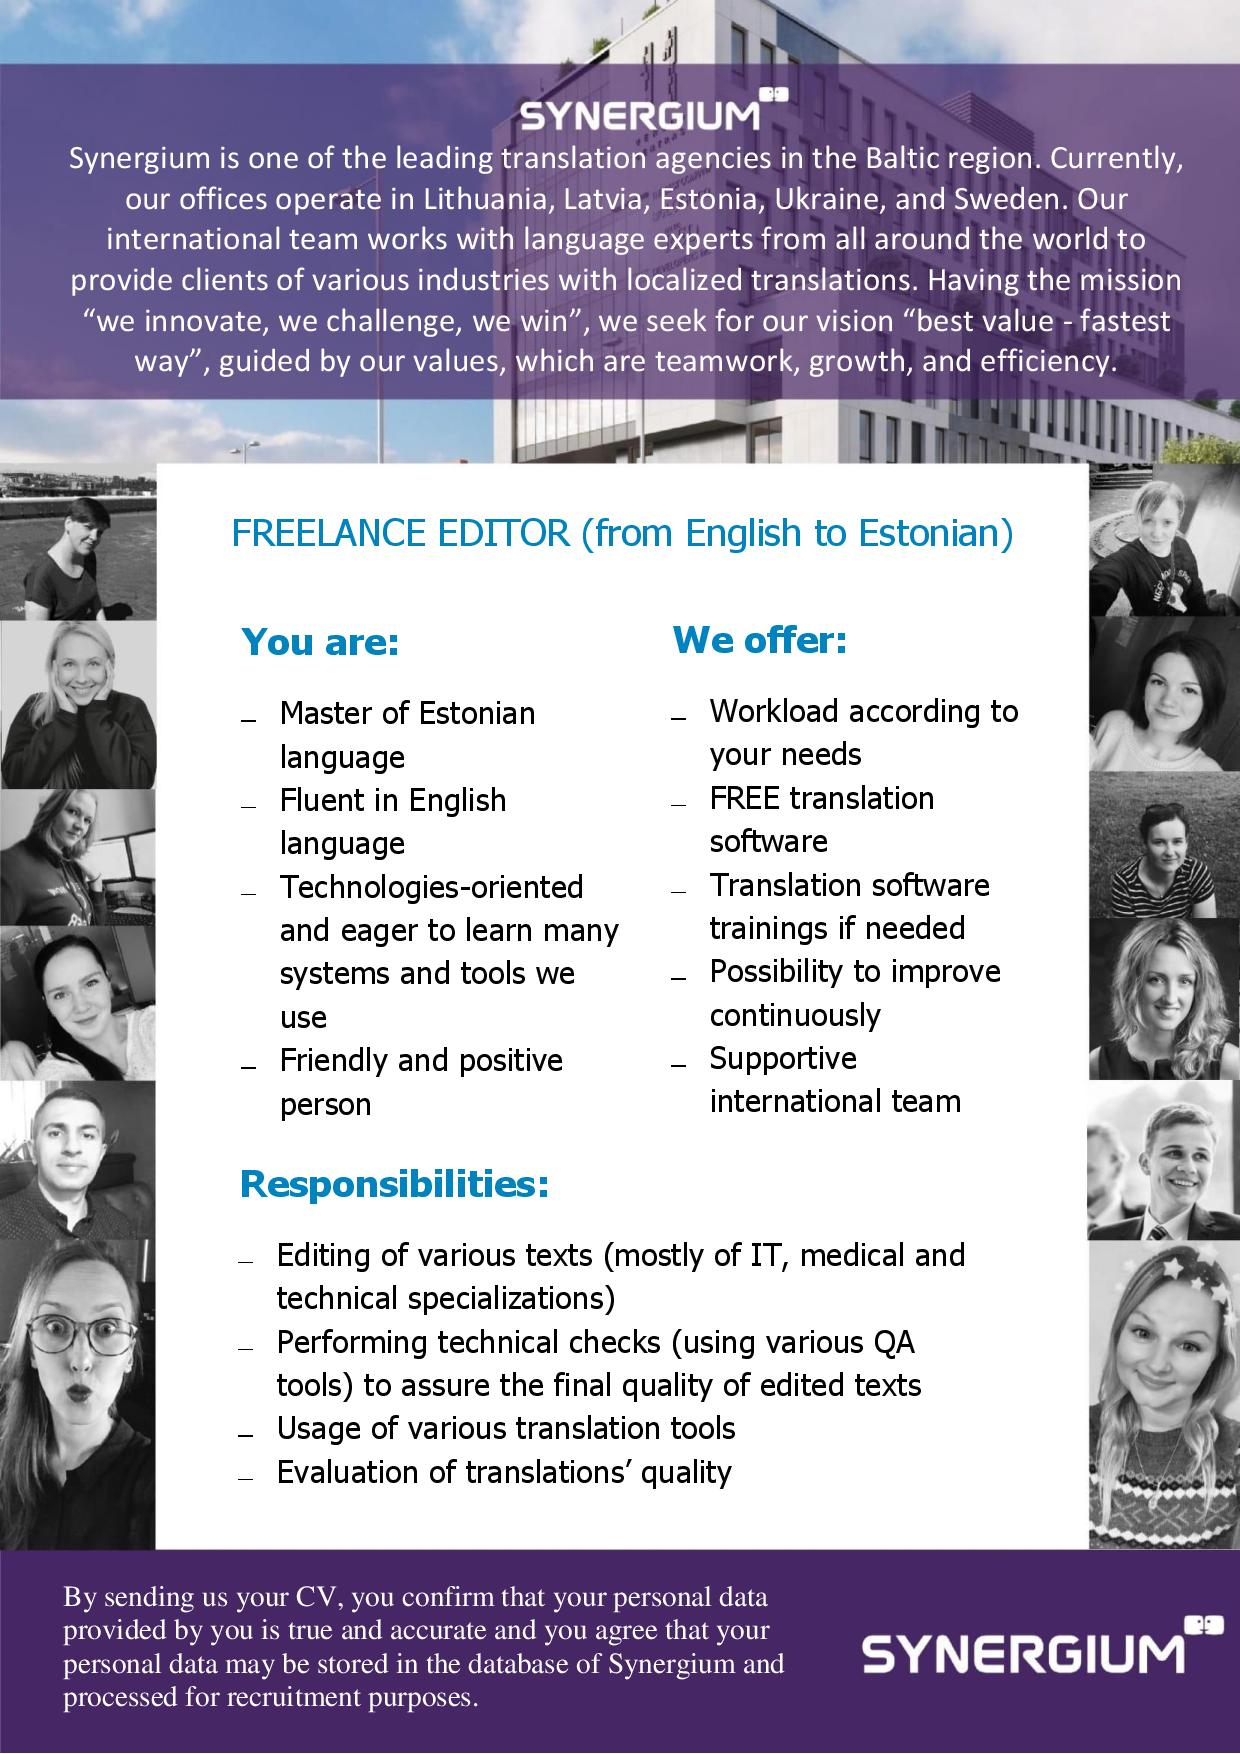 freelance editor from english to estonian job advertisement synergium